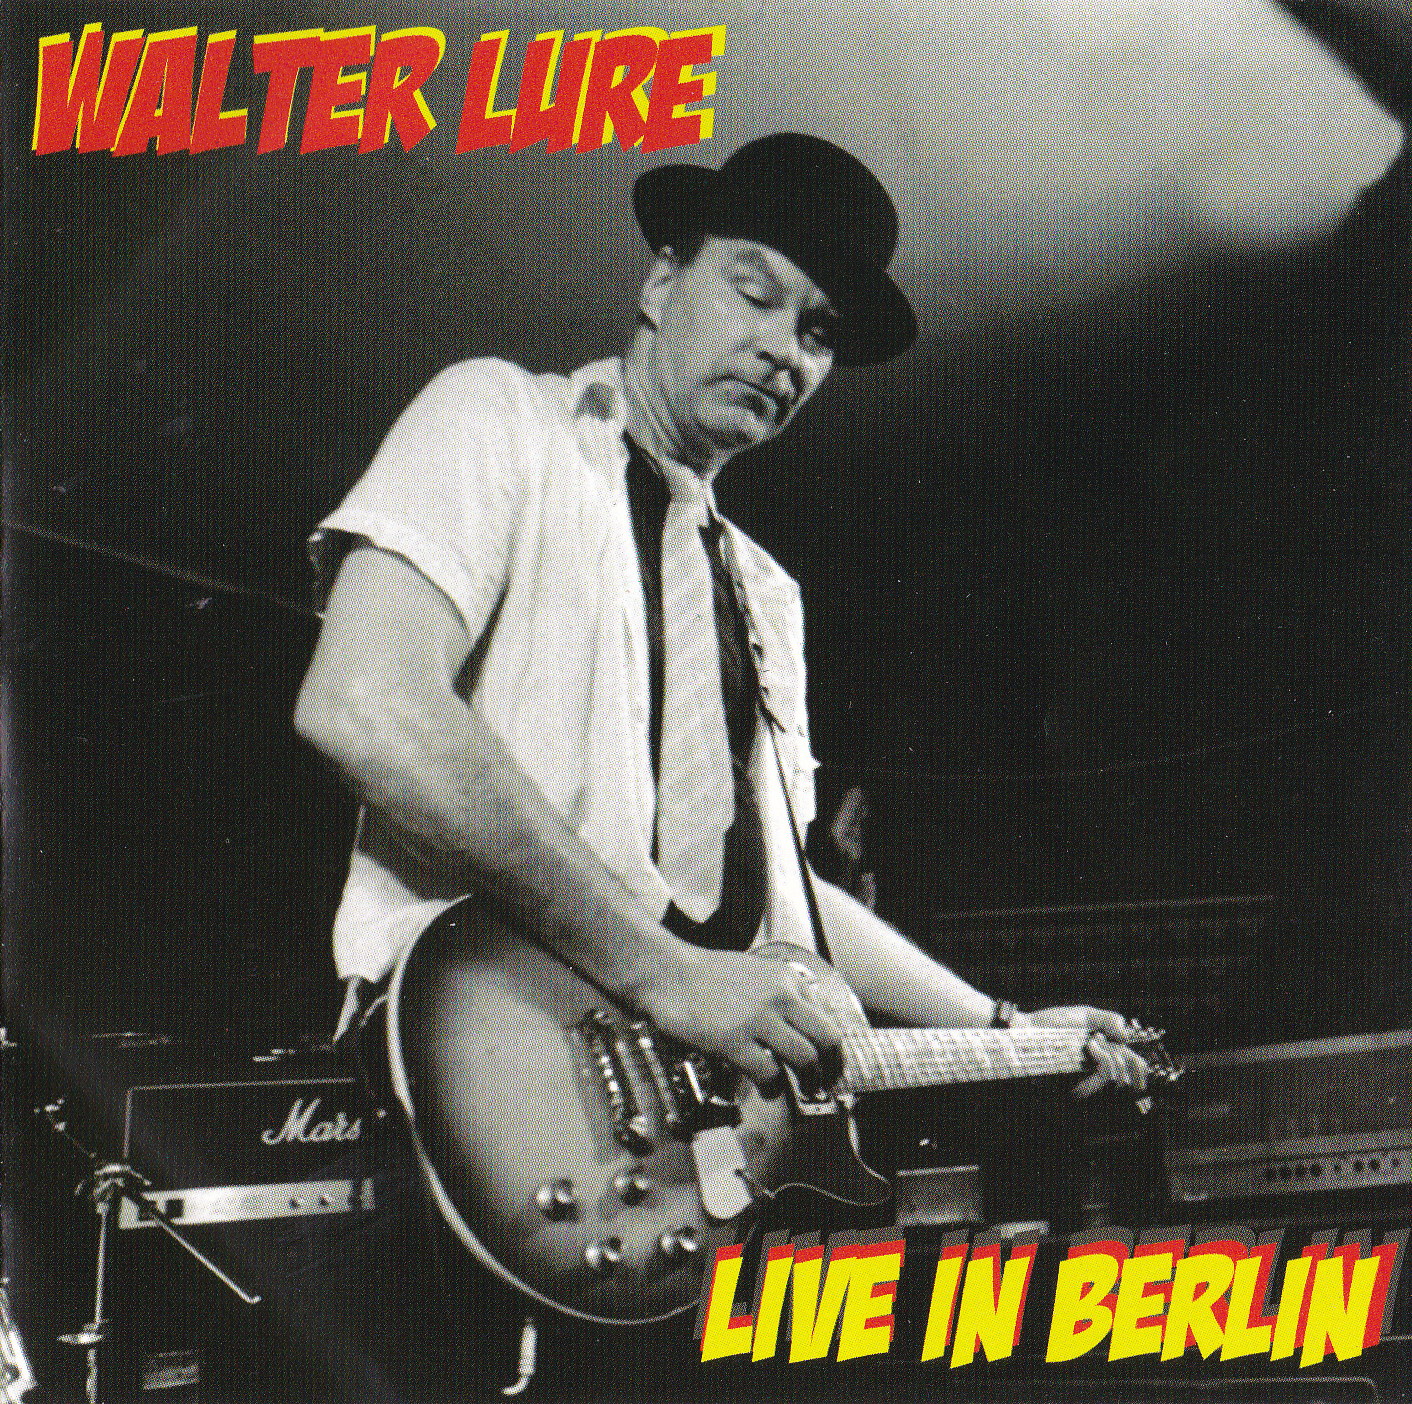 RATBOY69: Walter LURE - Live in Berlin